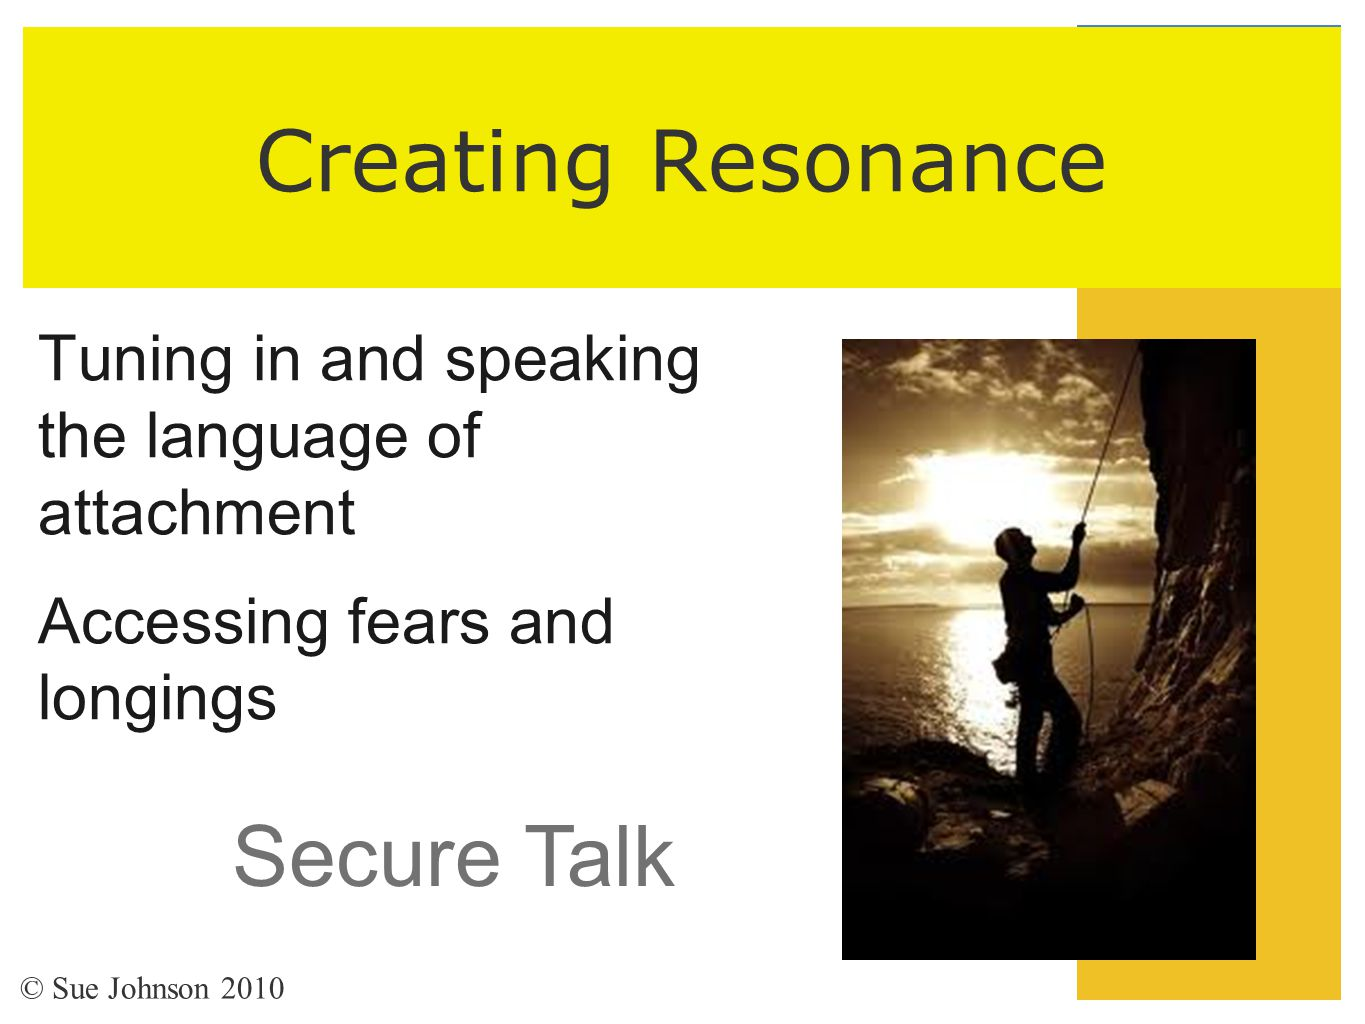 Creating Resonance Secure Talk